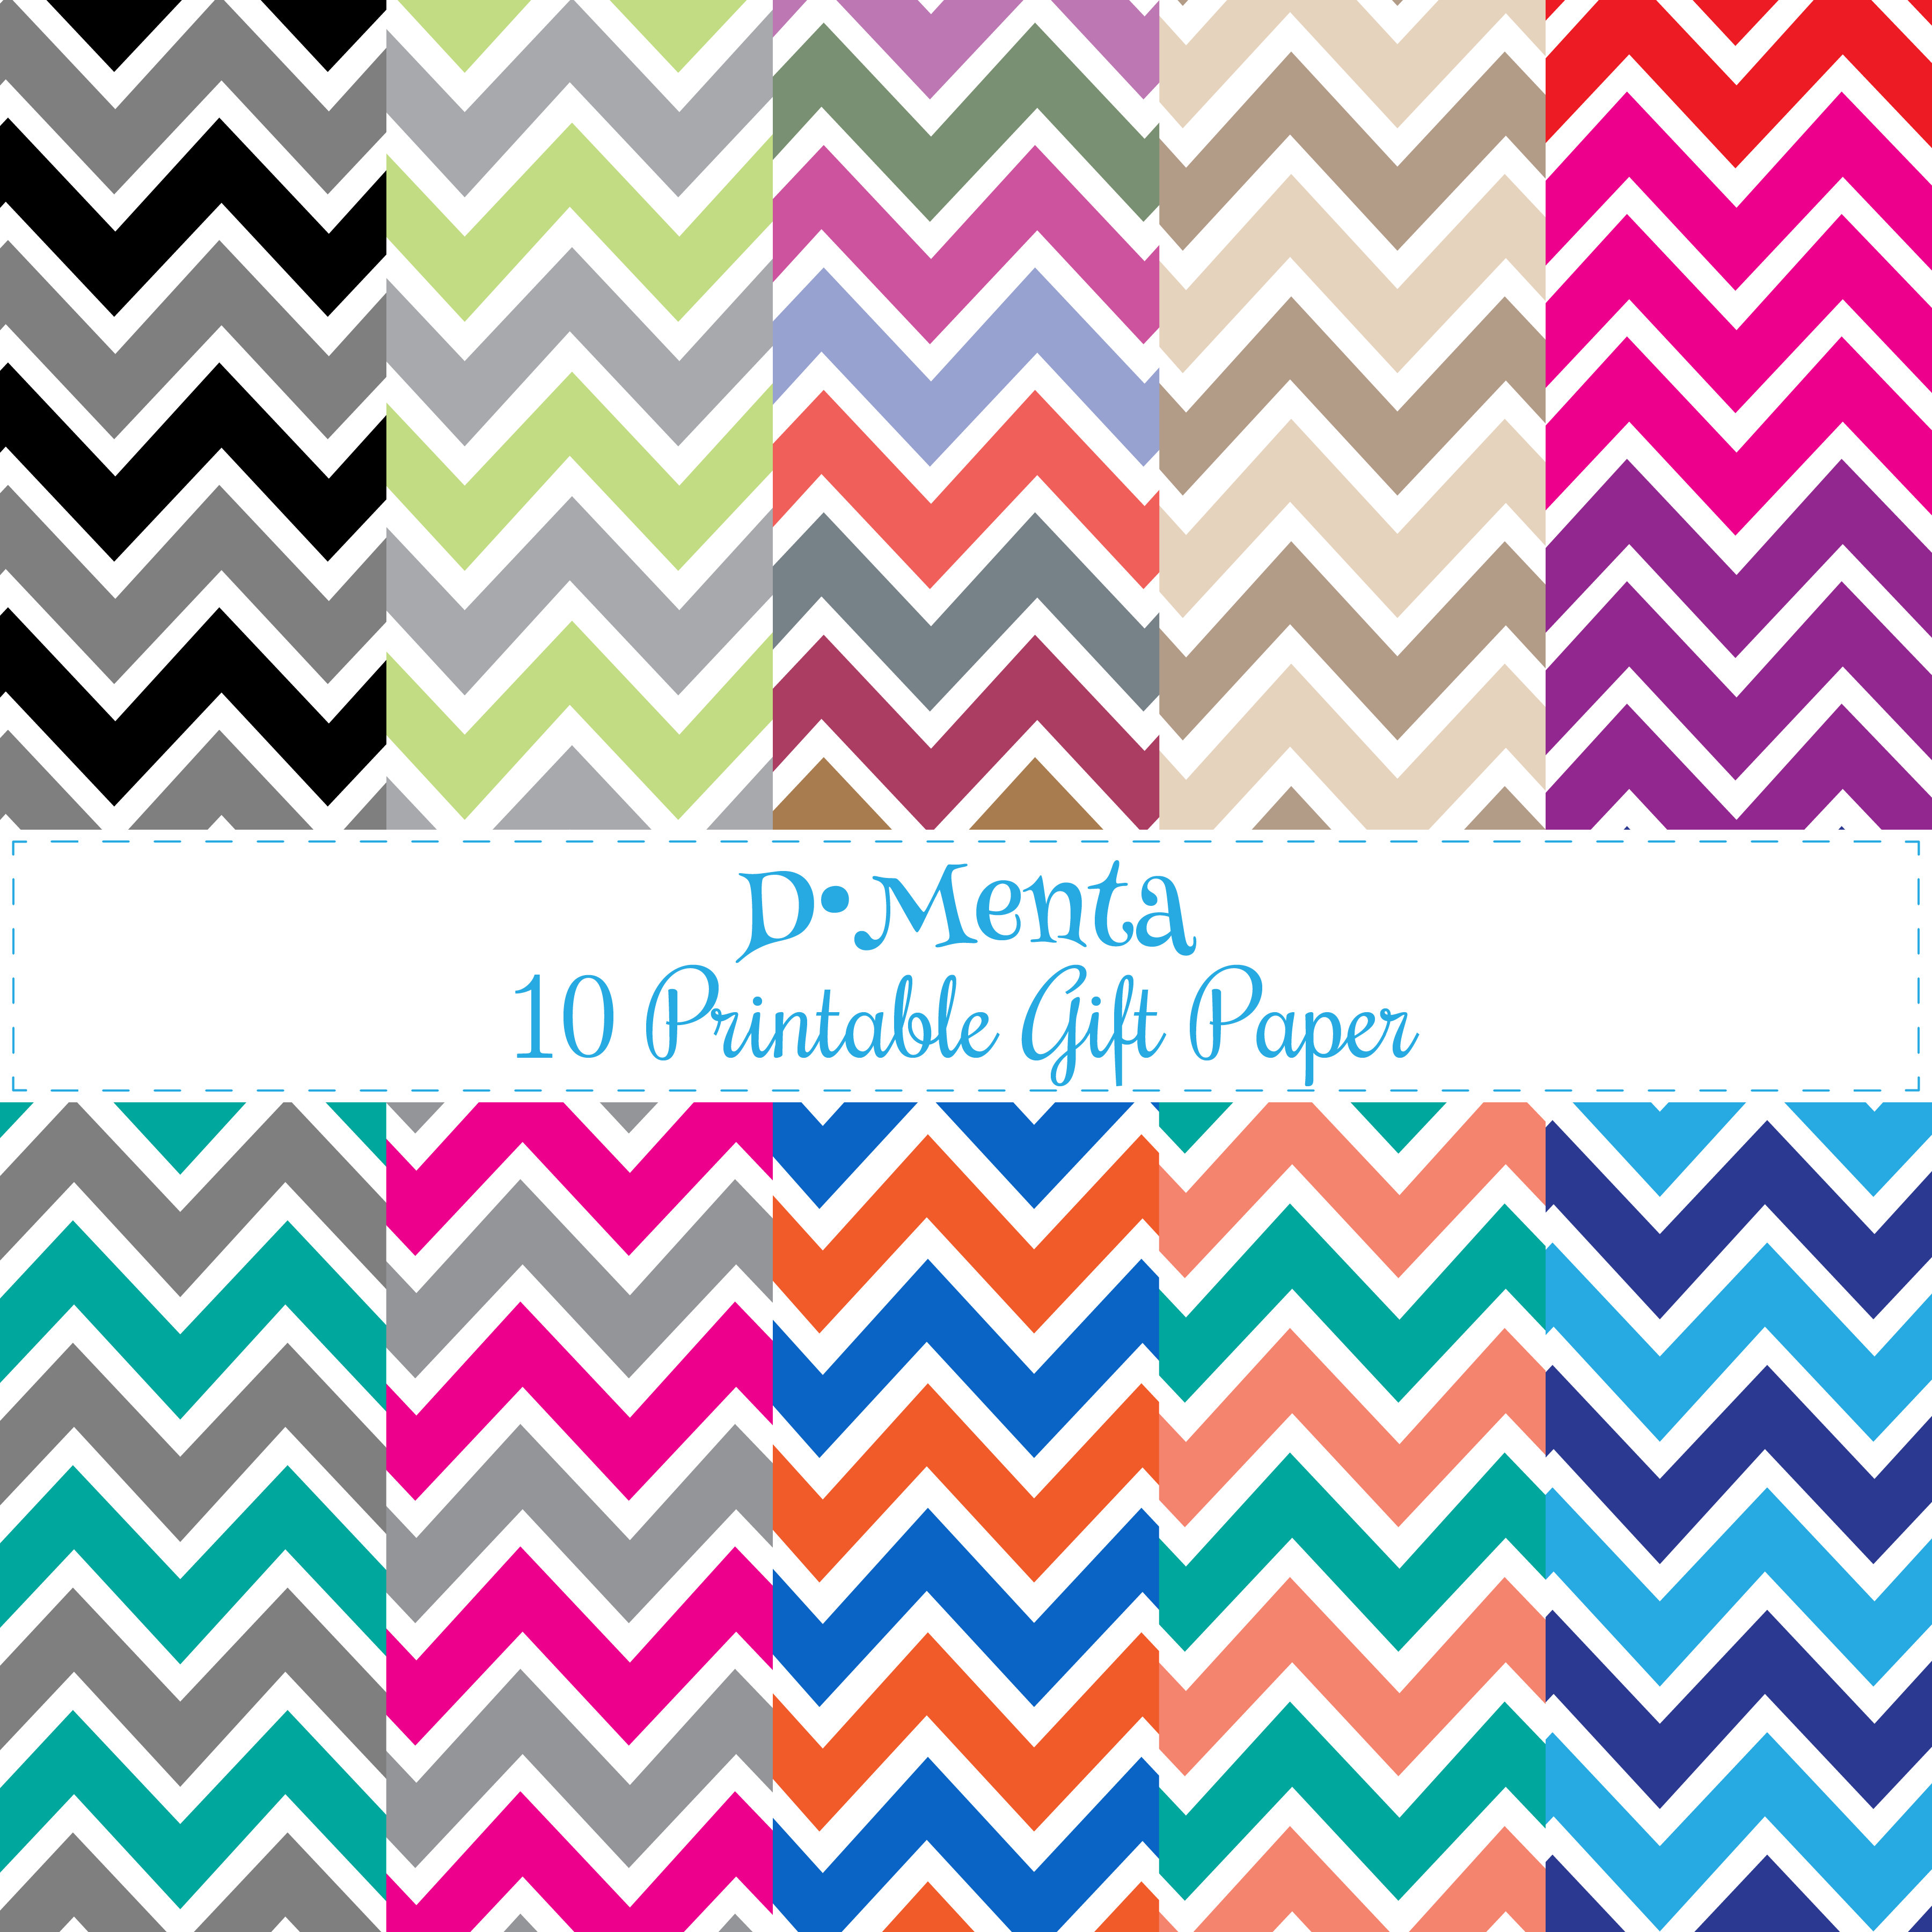 image relating to Chevron Printable Paper named 10 Reward printable Chevron paper